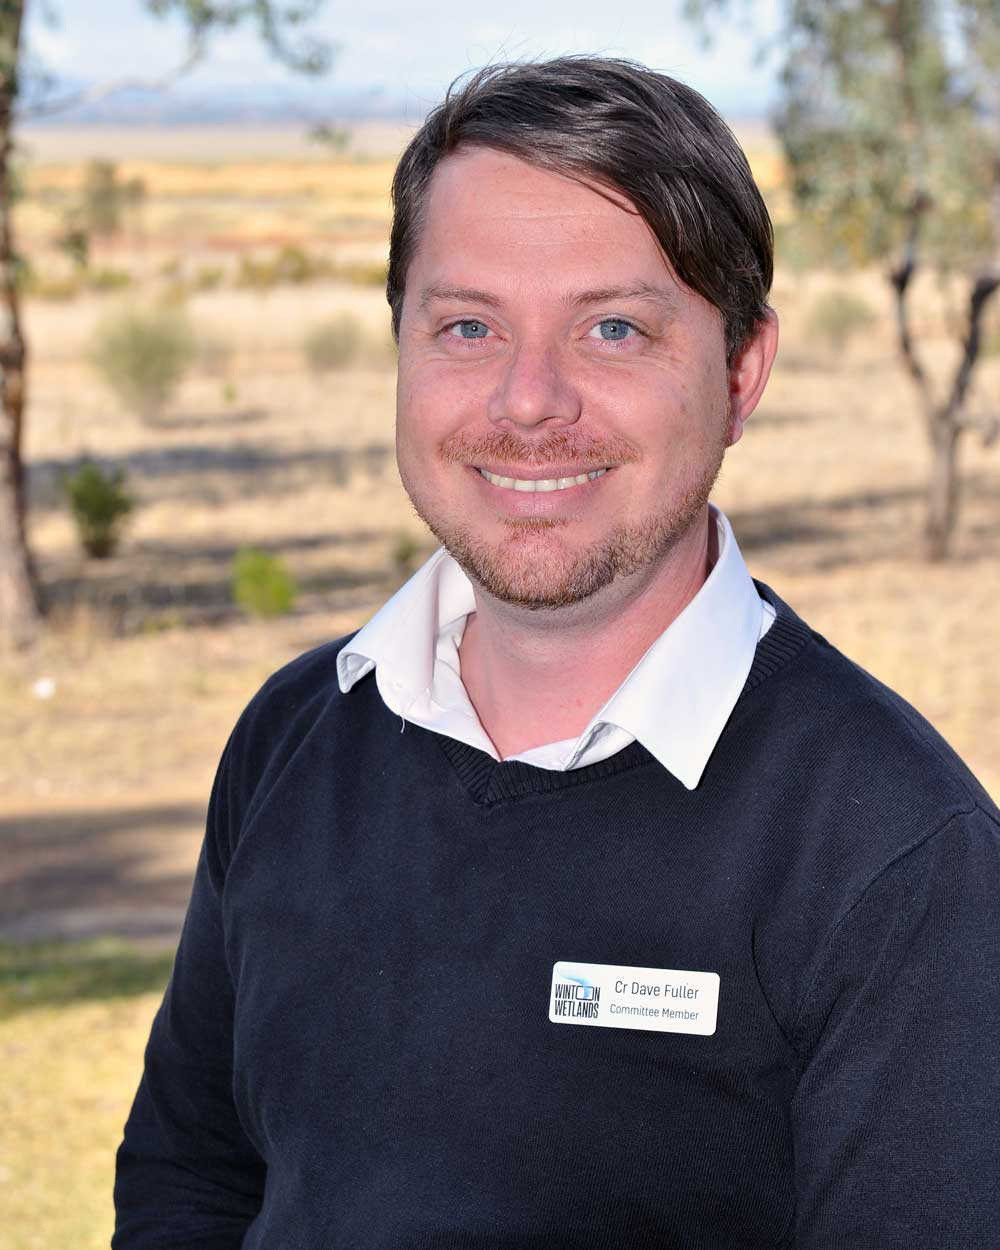 Cr Dave Fuller, Rural City of Wangaratta